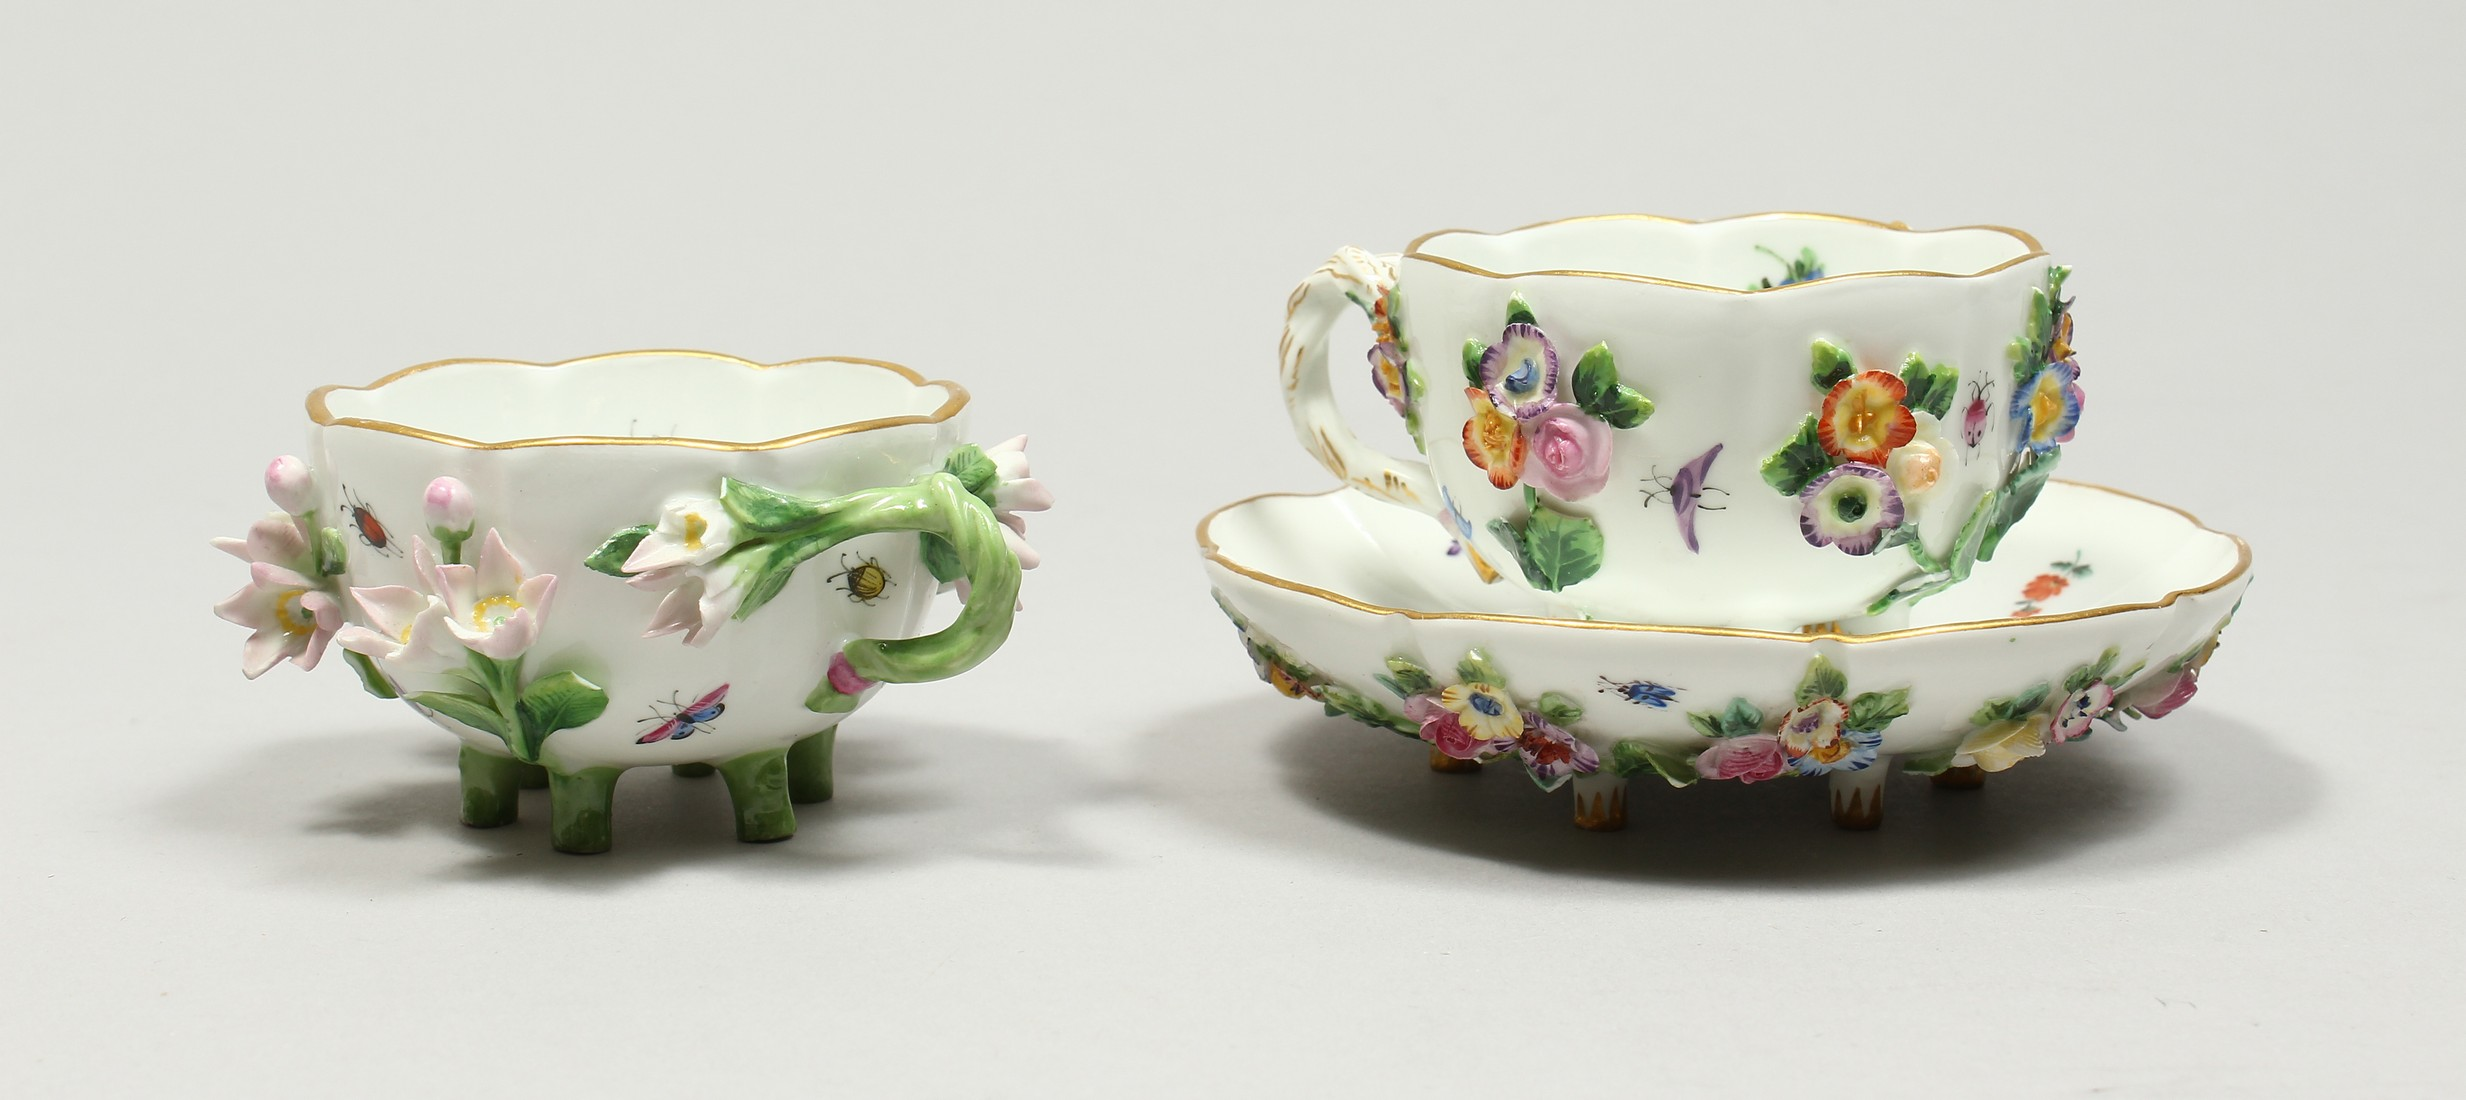 TWO MEISSEN PORCELAIN CUPS AND SAUCERS AND A SAUCER, encrusted with flowers and painted with